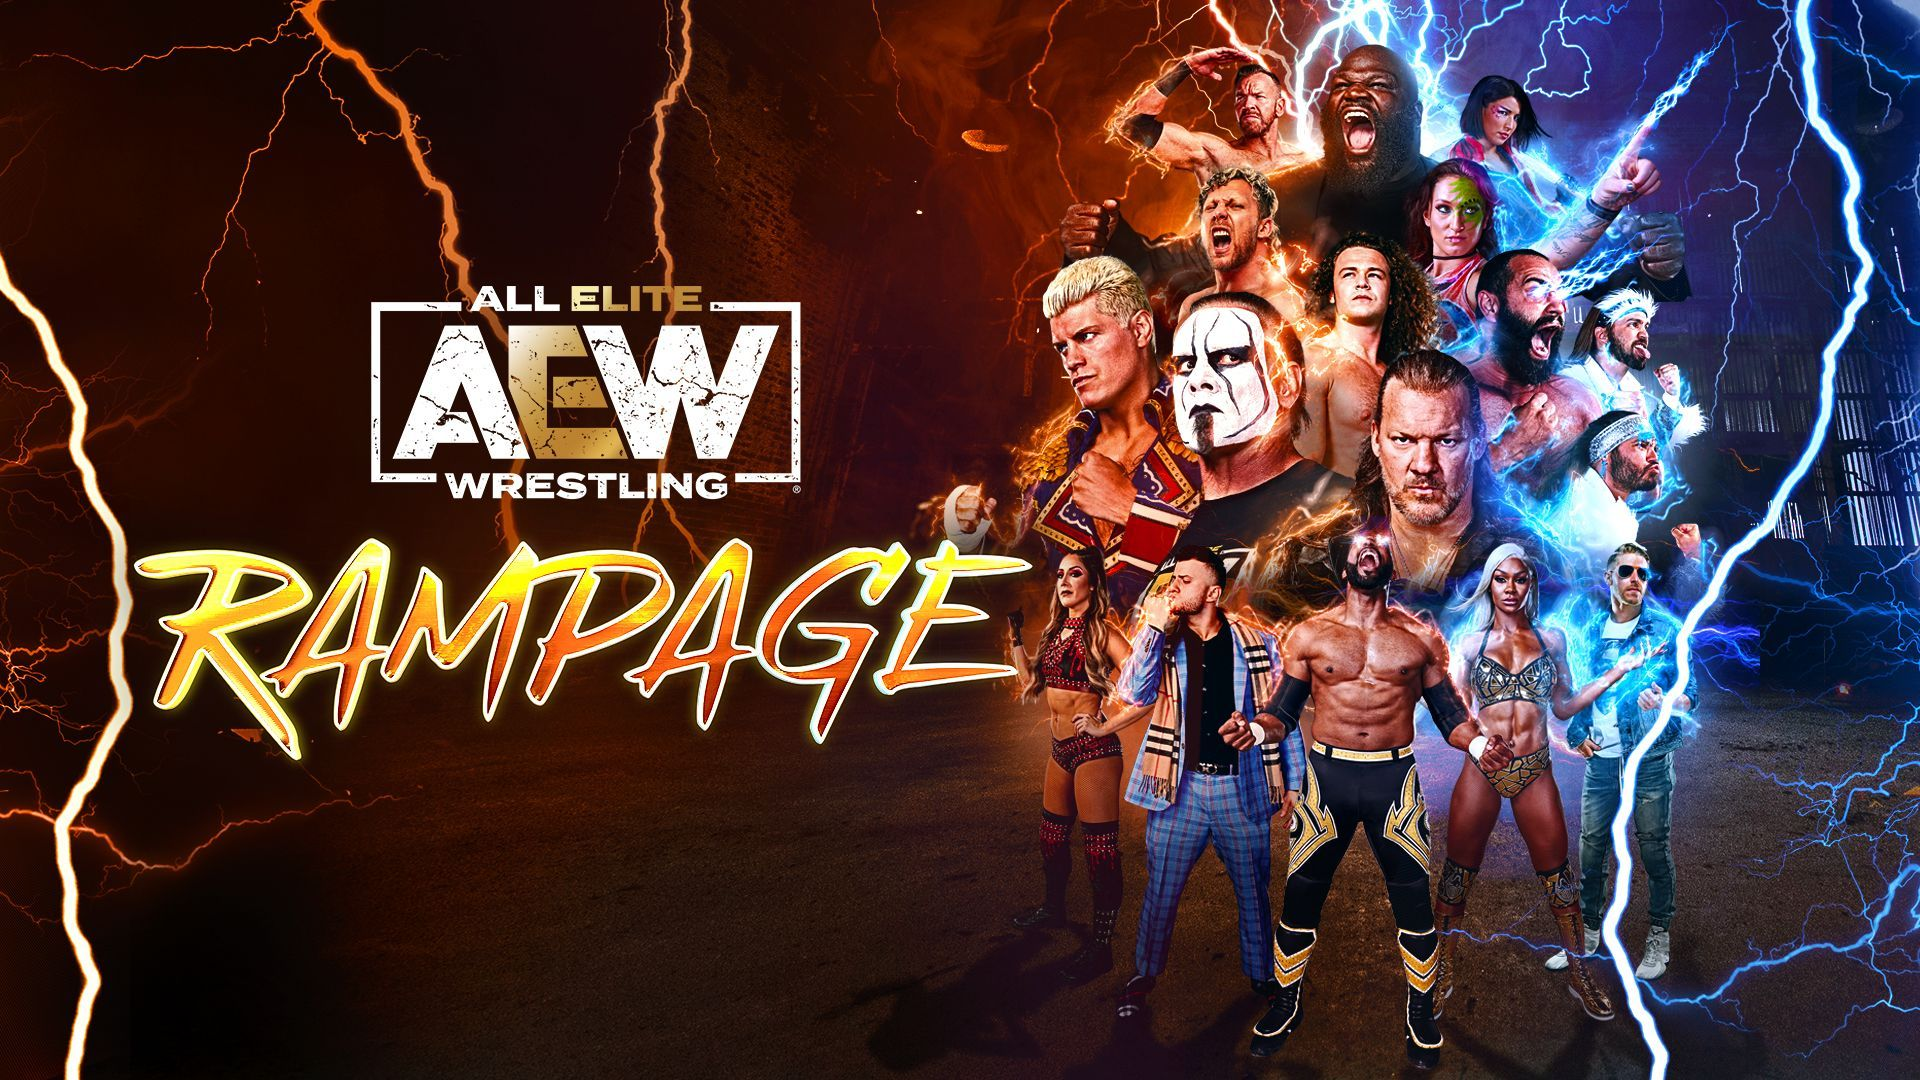 Are we in for a surprise during AEW Rampage?